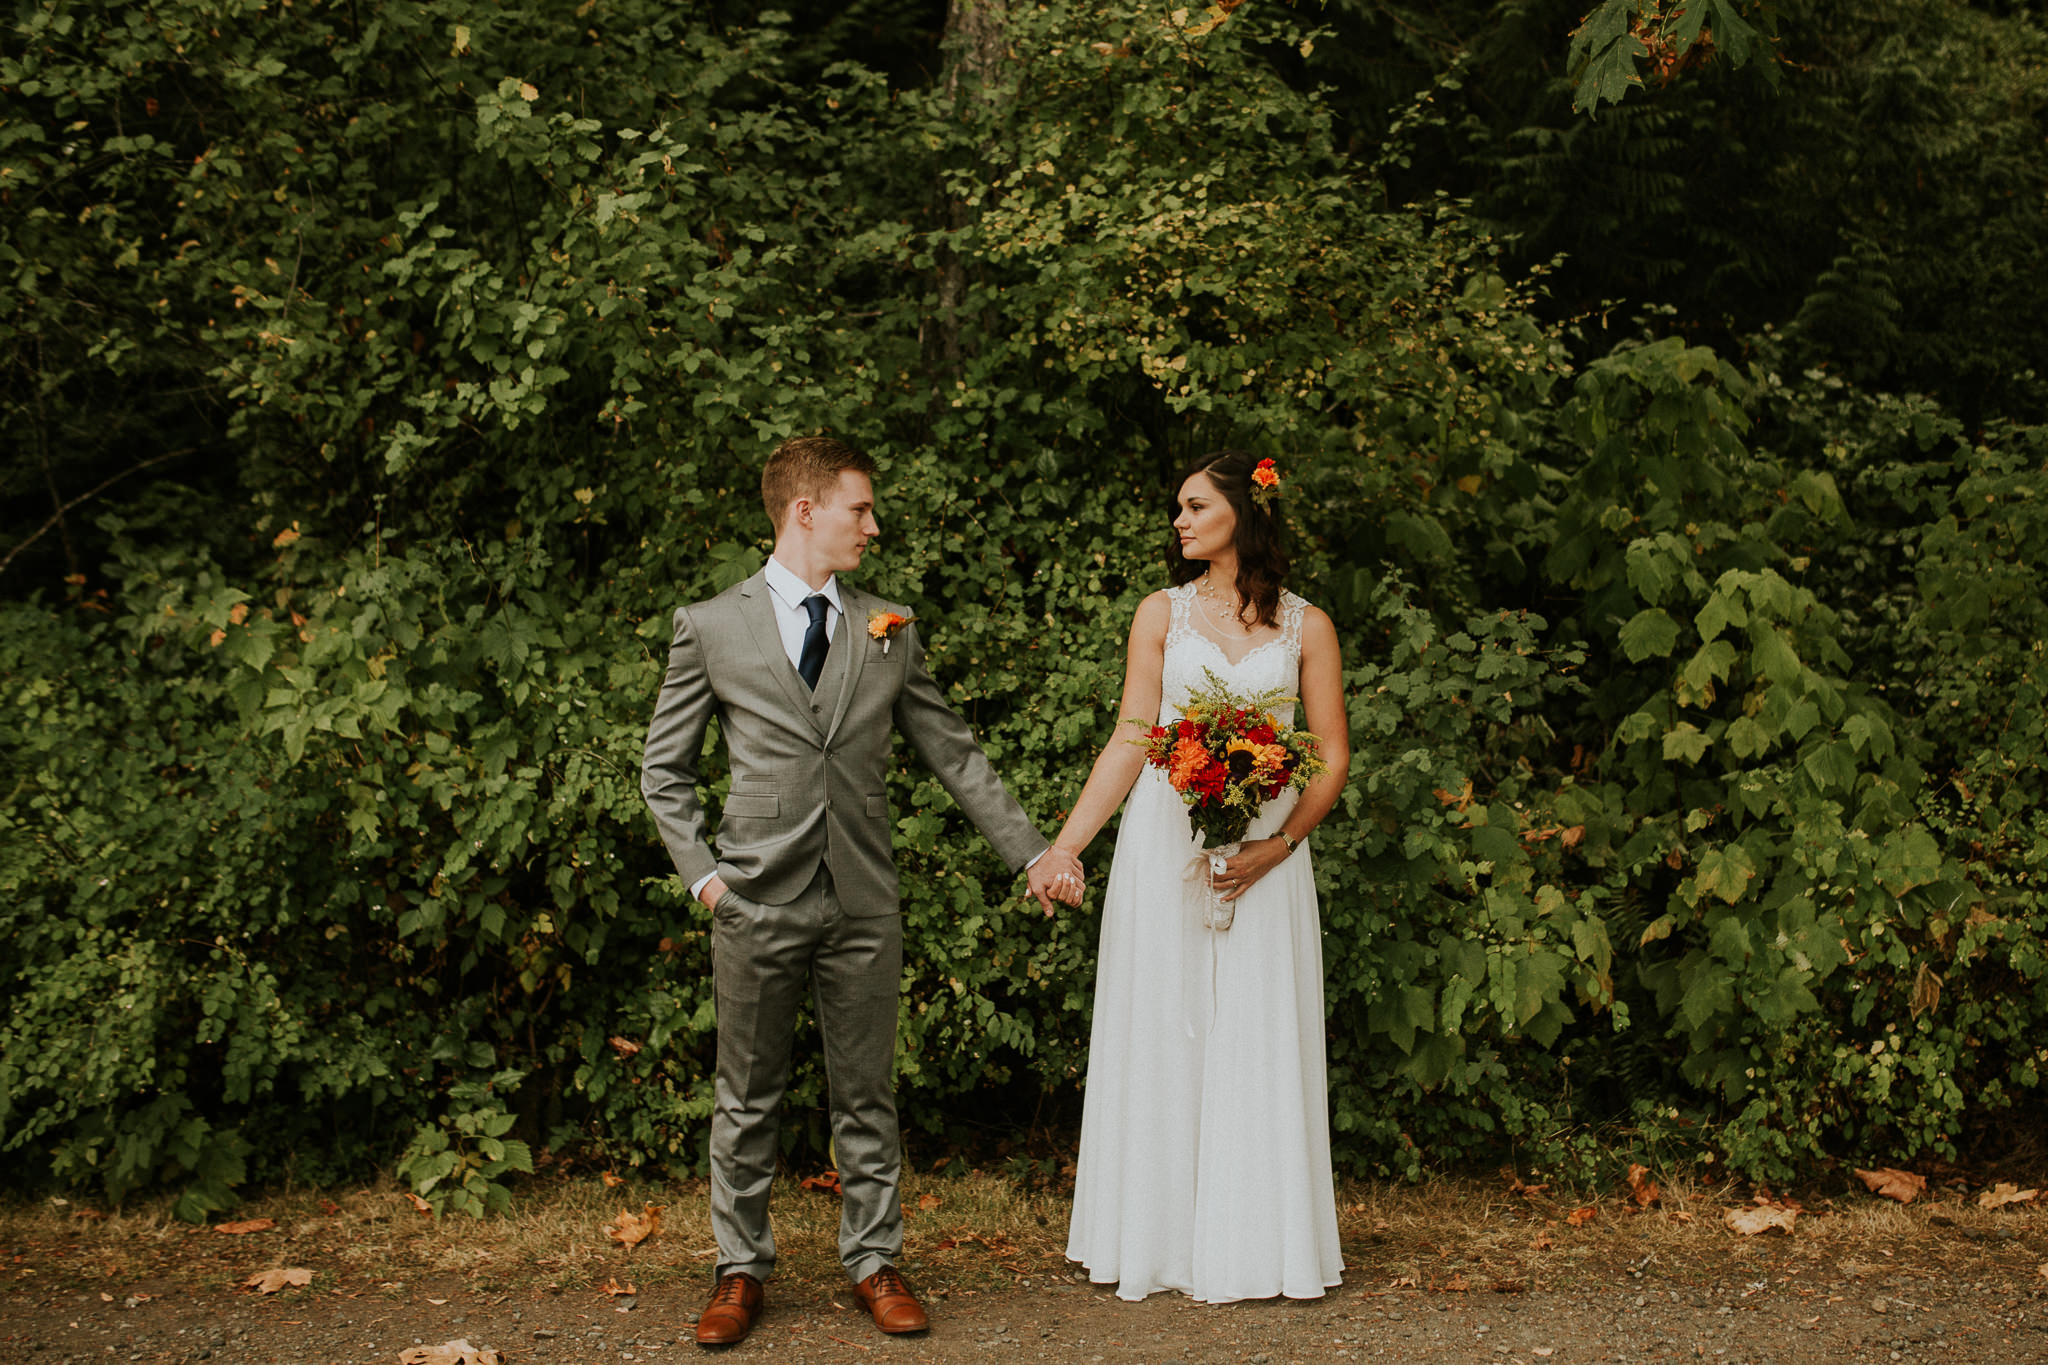 Port-Orchard-Manchester-Park-elopement-Bride-And-Groom-47.jpg